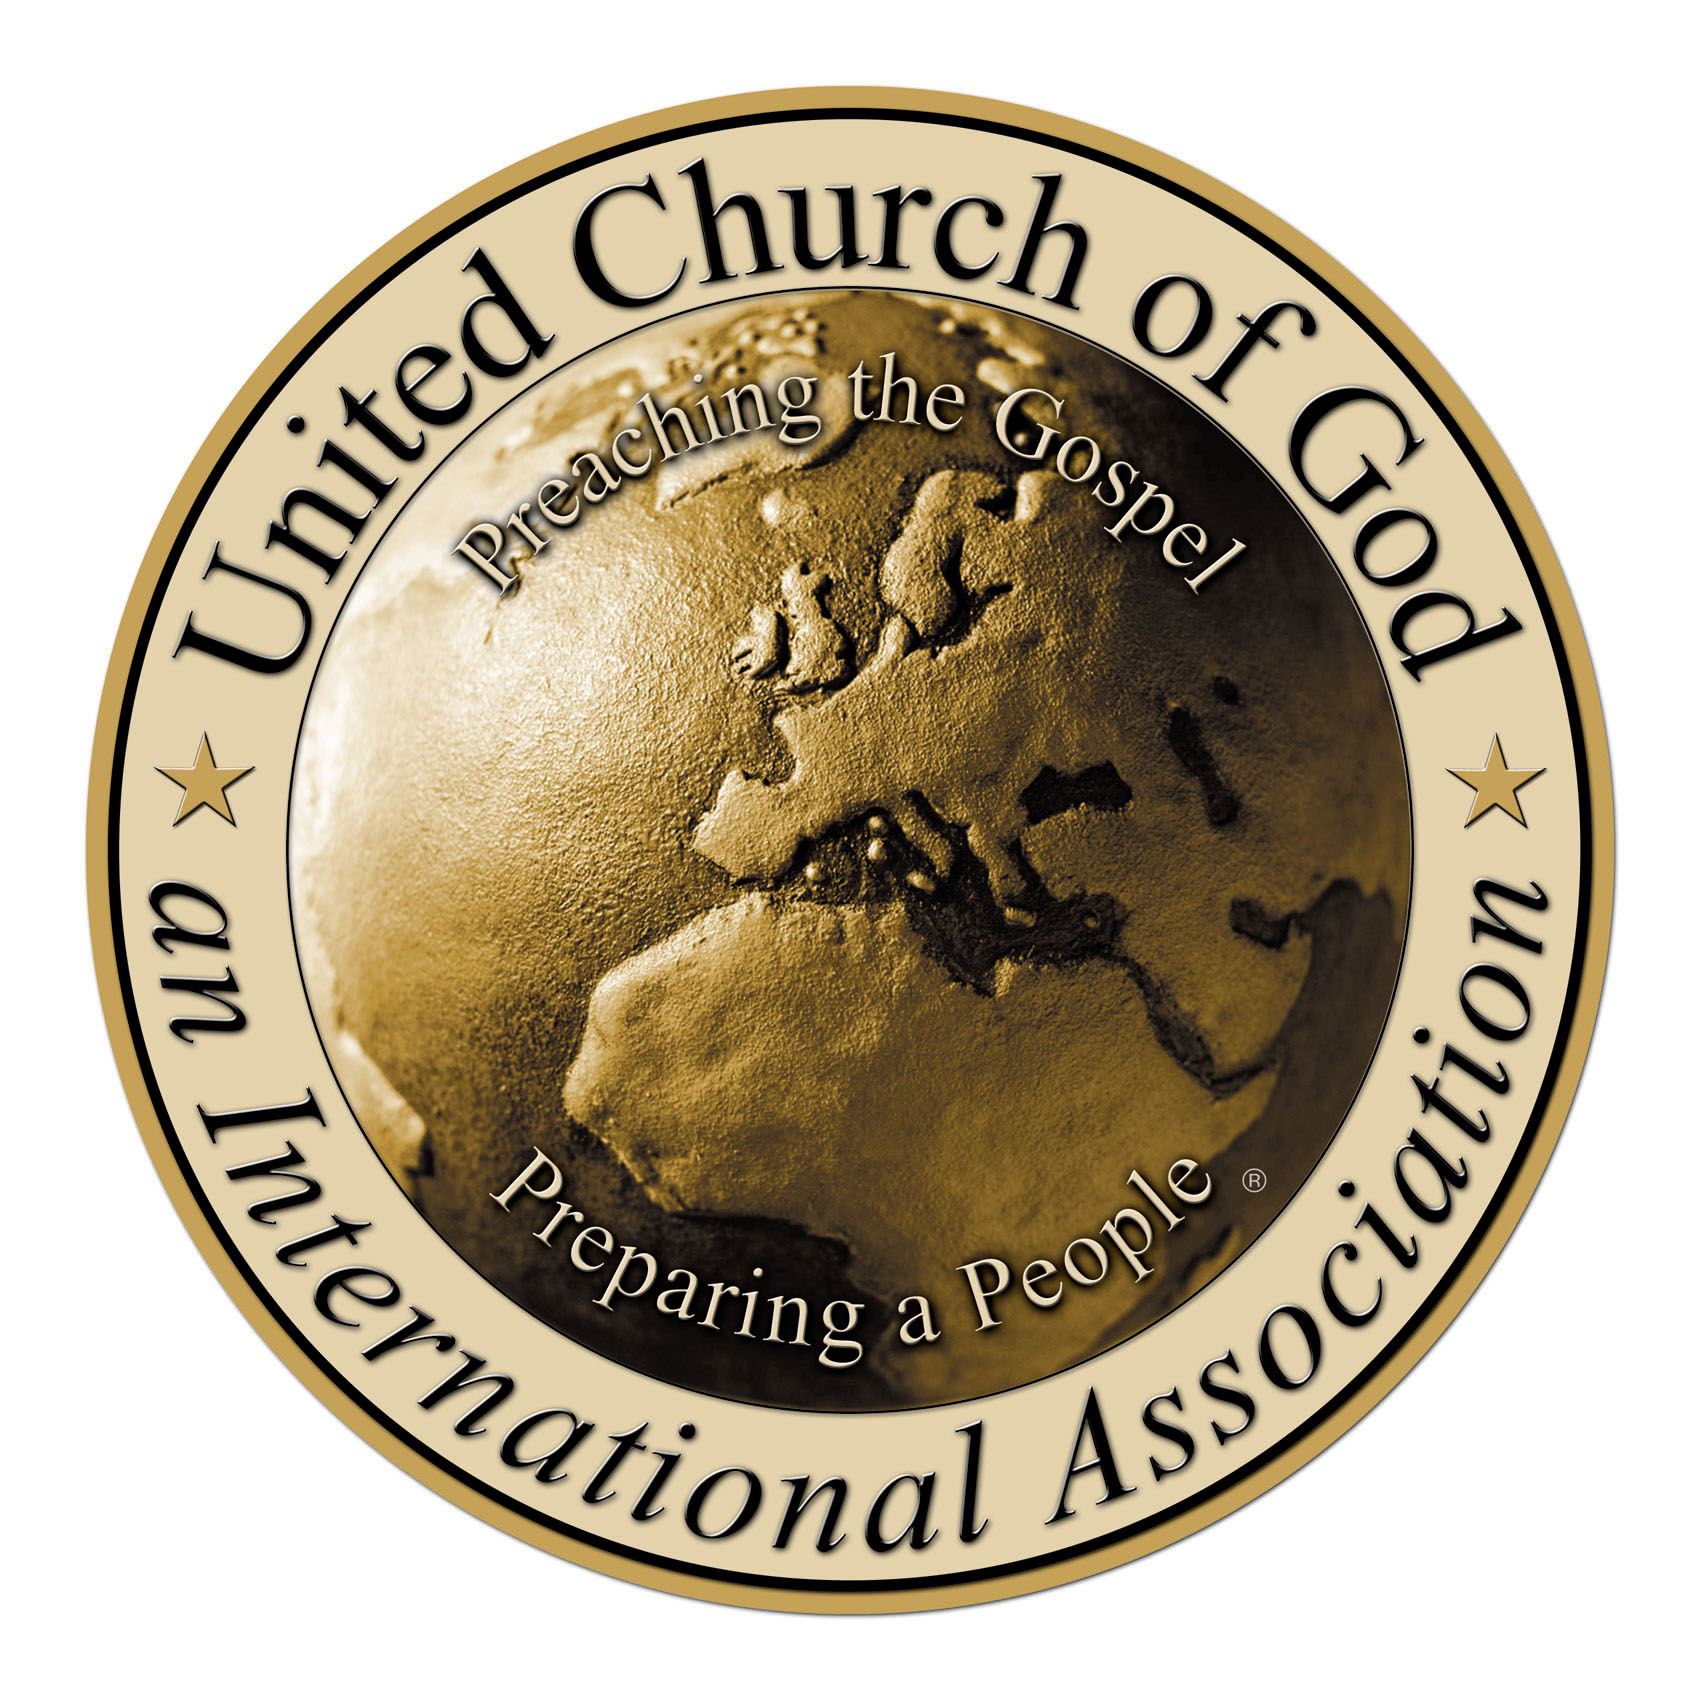 Kingdom Of God Bible Seminars Hosted By The United Church